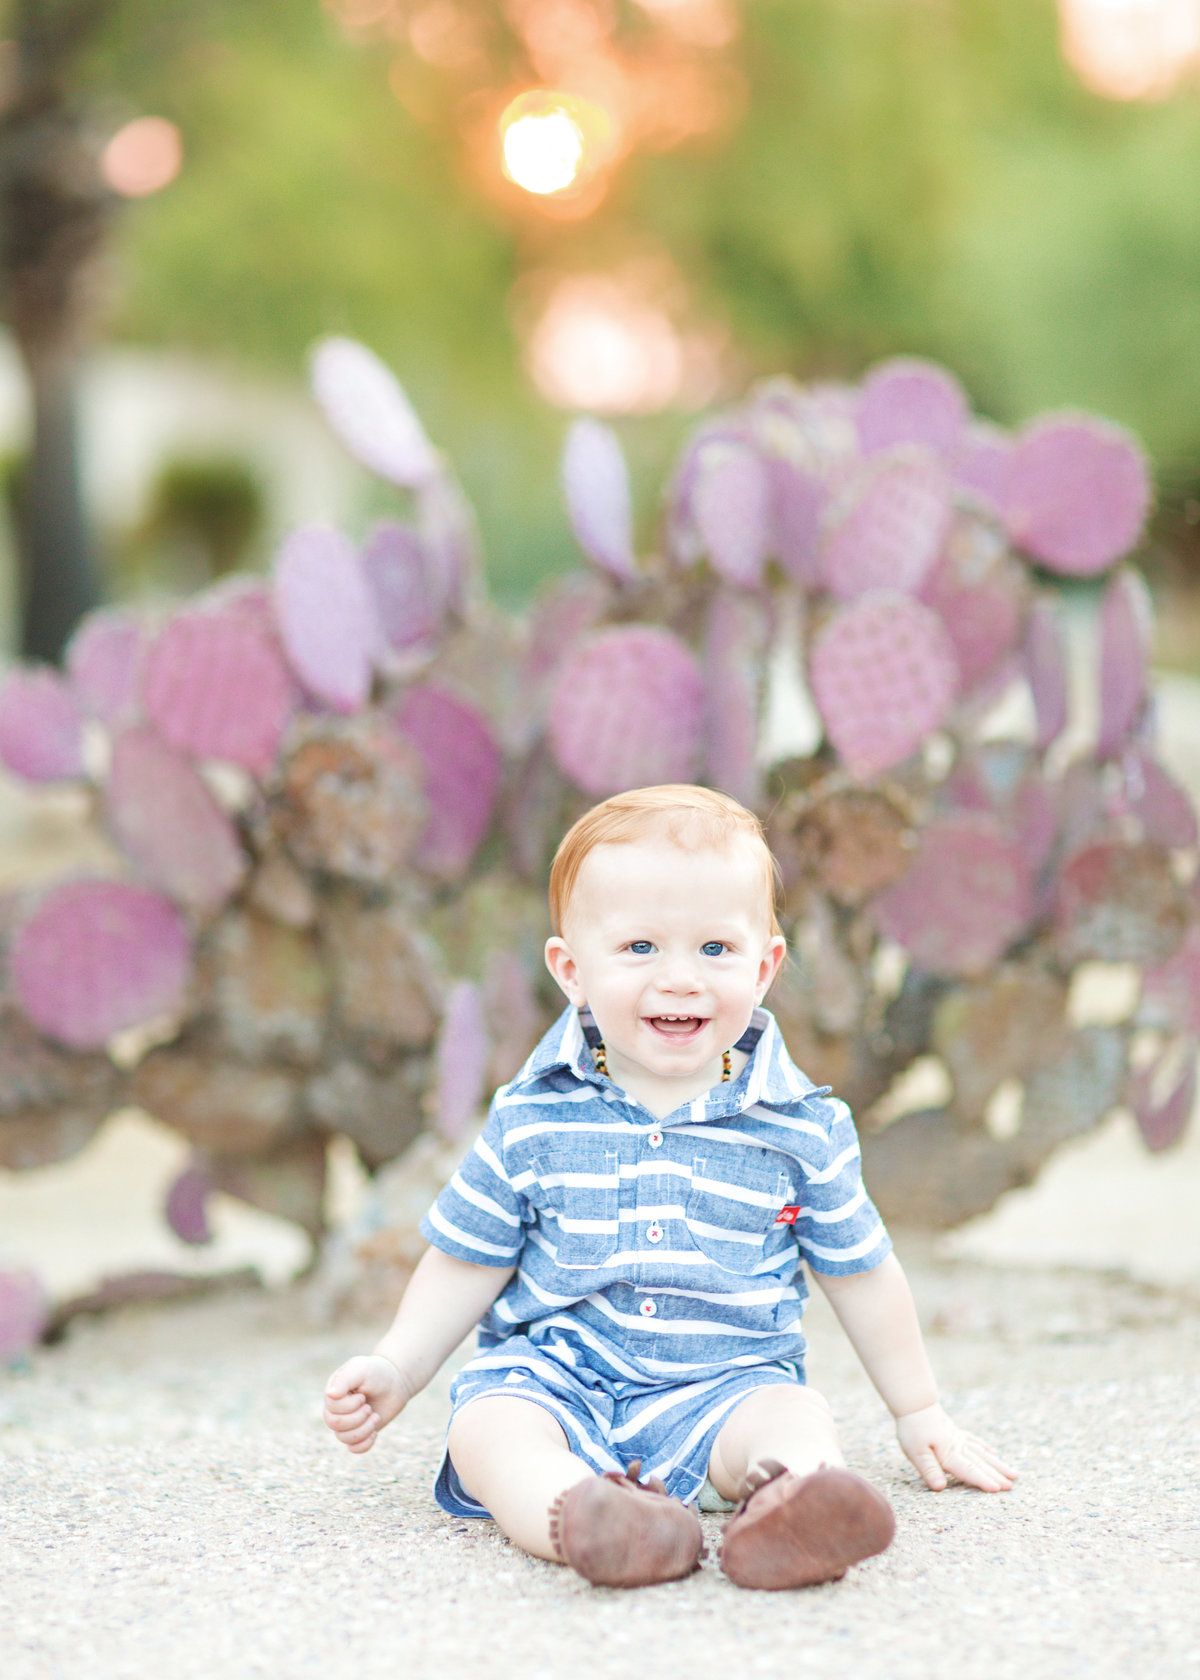 Toddler in a stiped blue romper sitting in front of prickly pear cactus